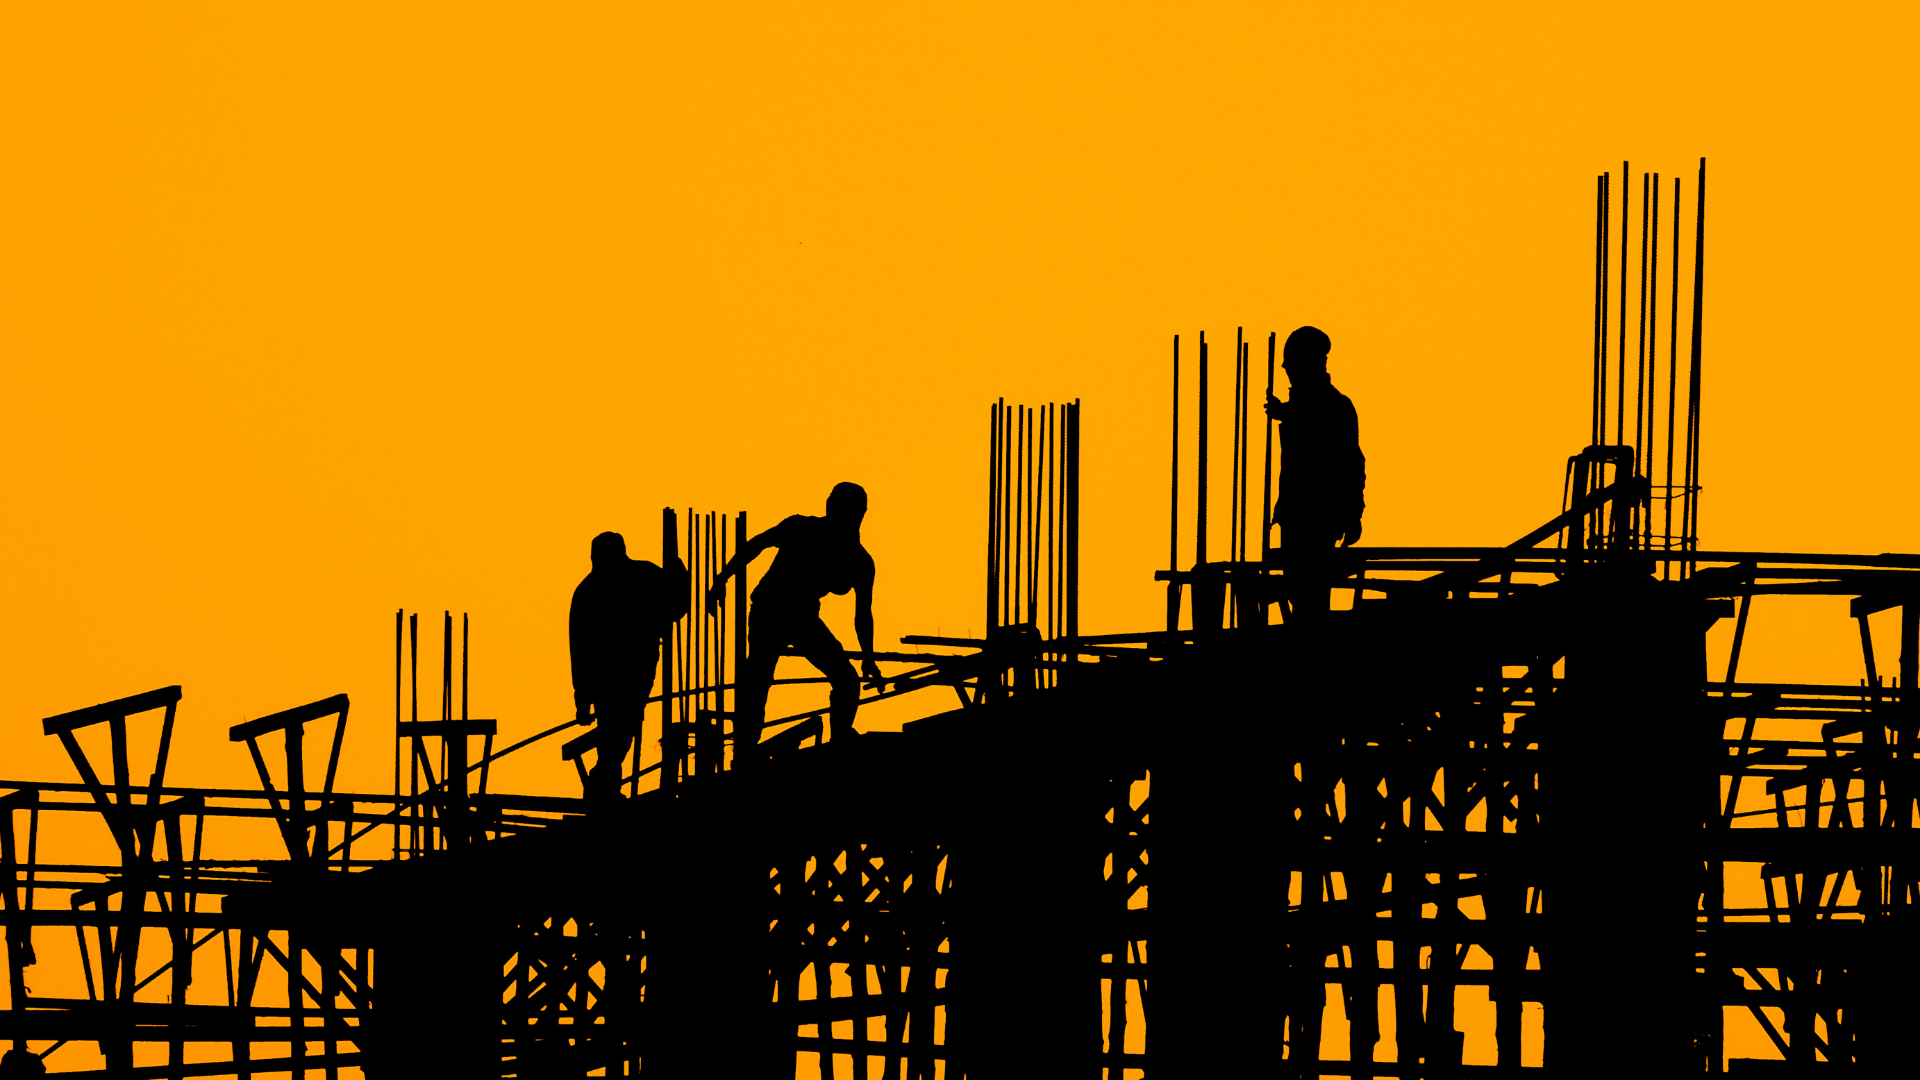 A pair of construction workers on a site at sunset.